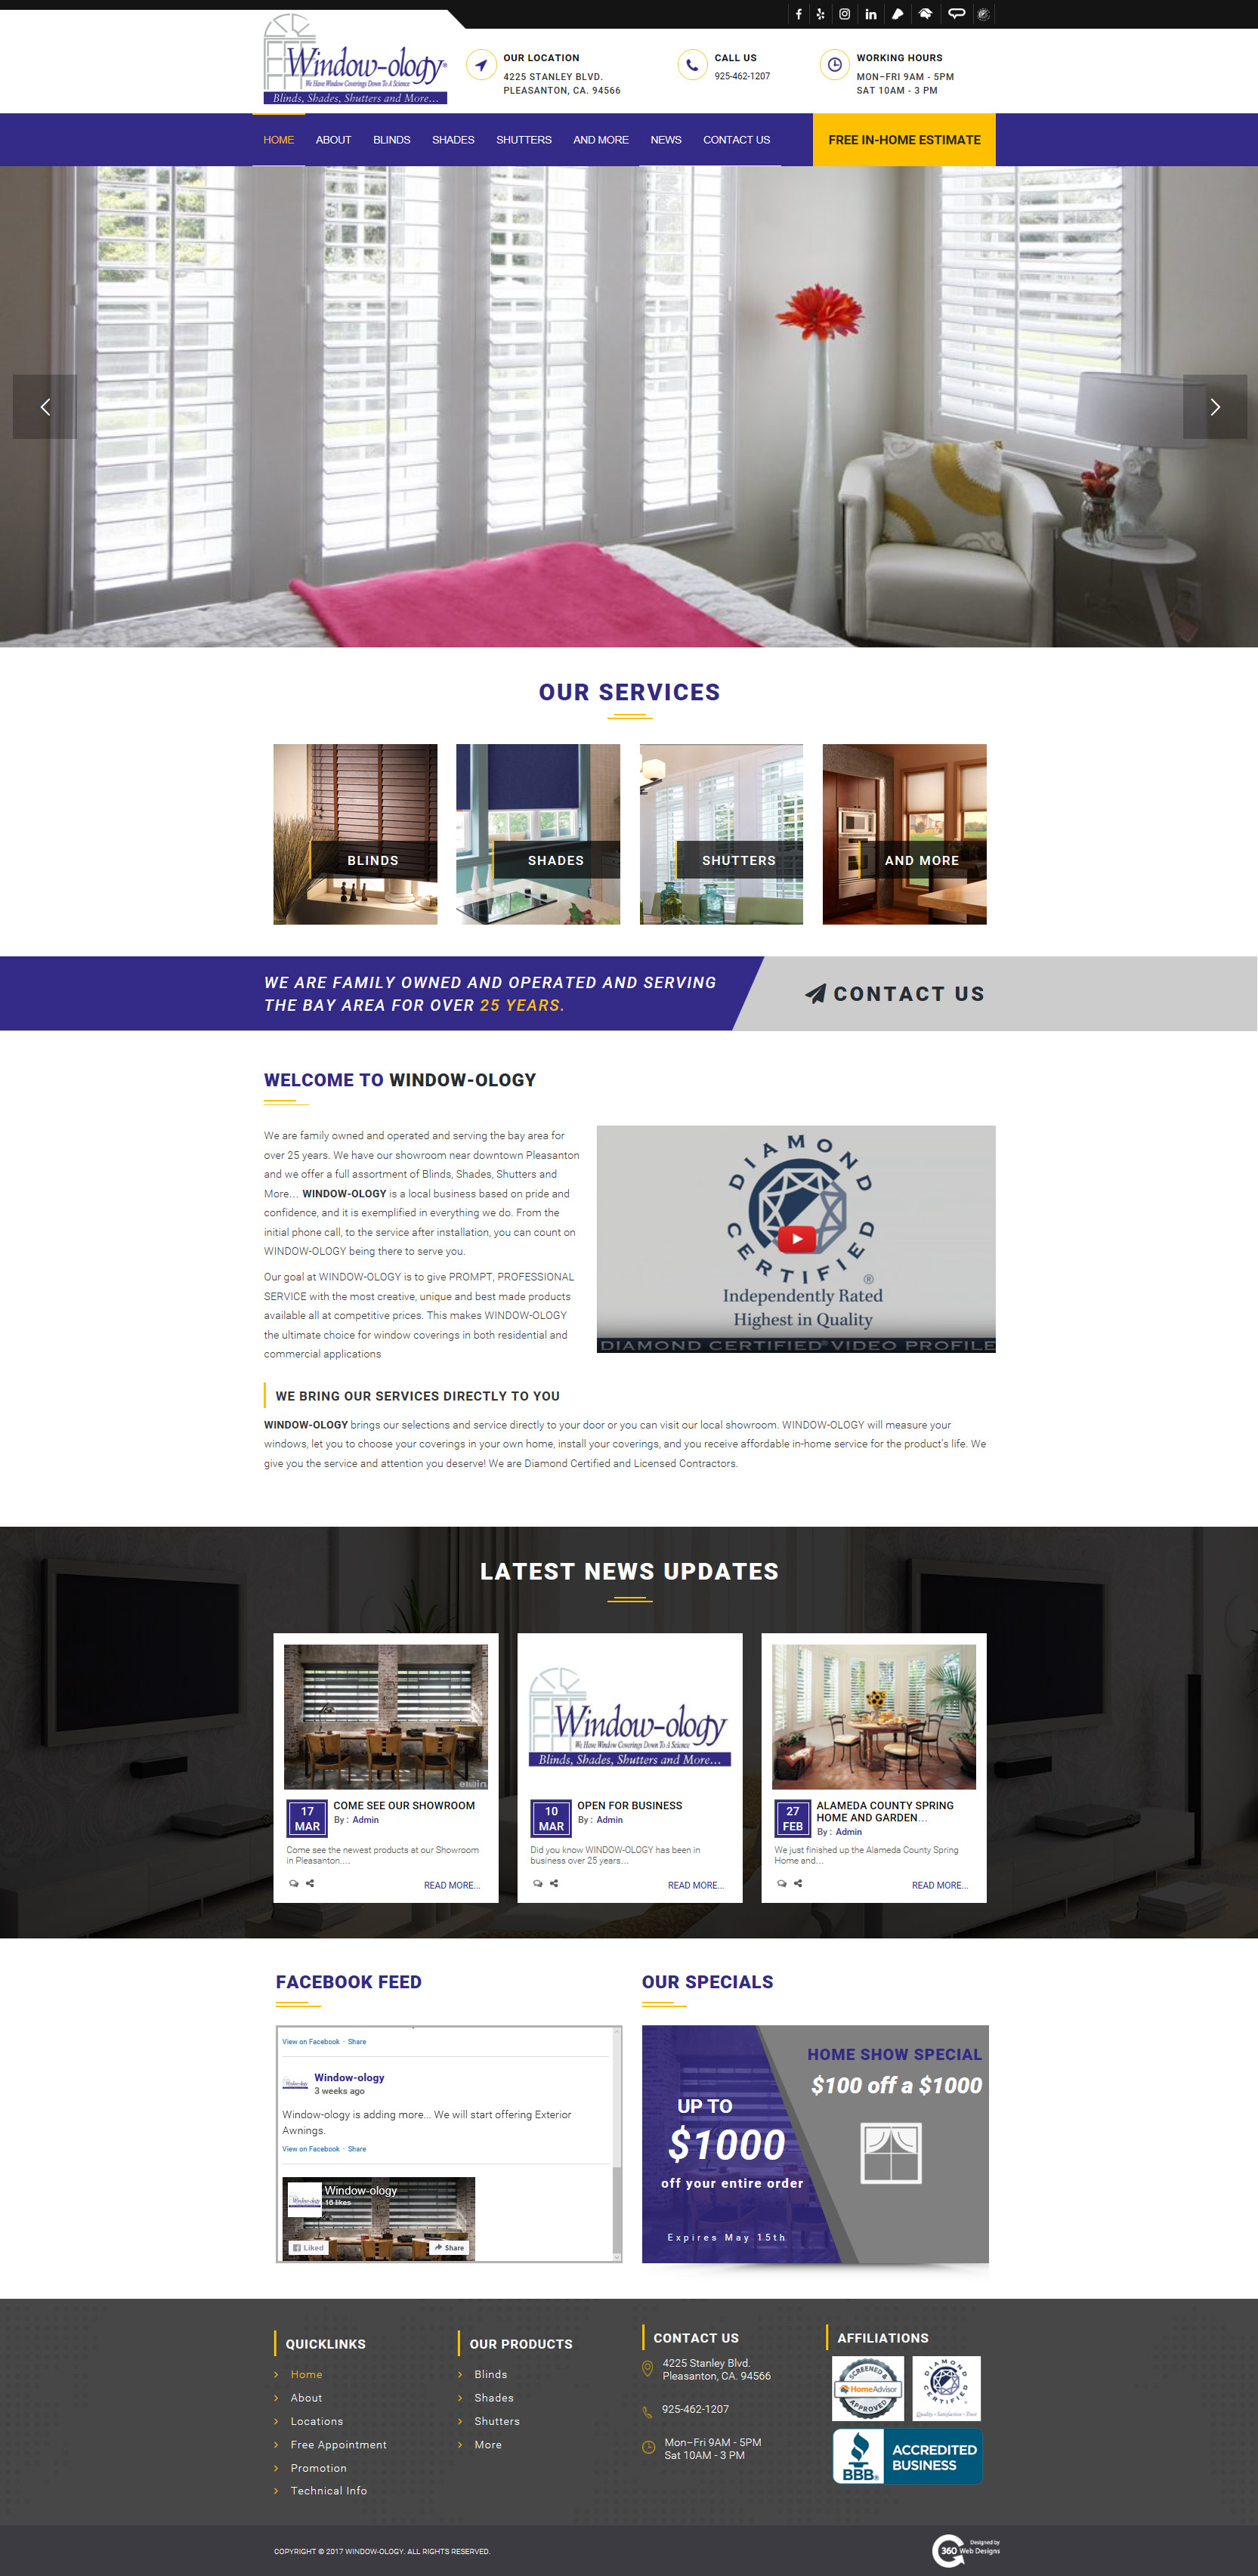 Windwo-ology home page | 360 Web Designs